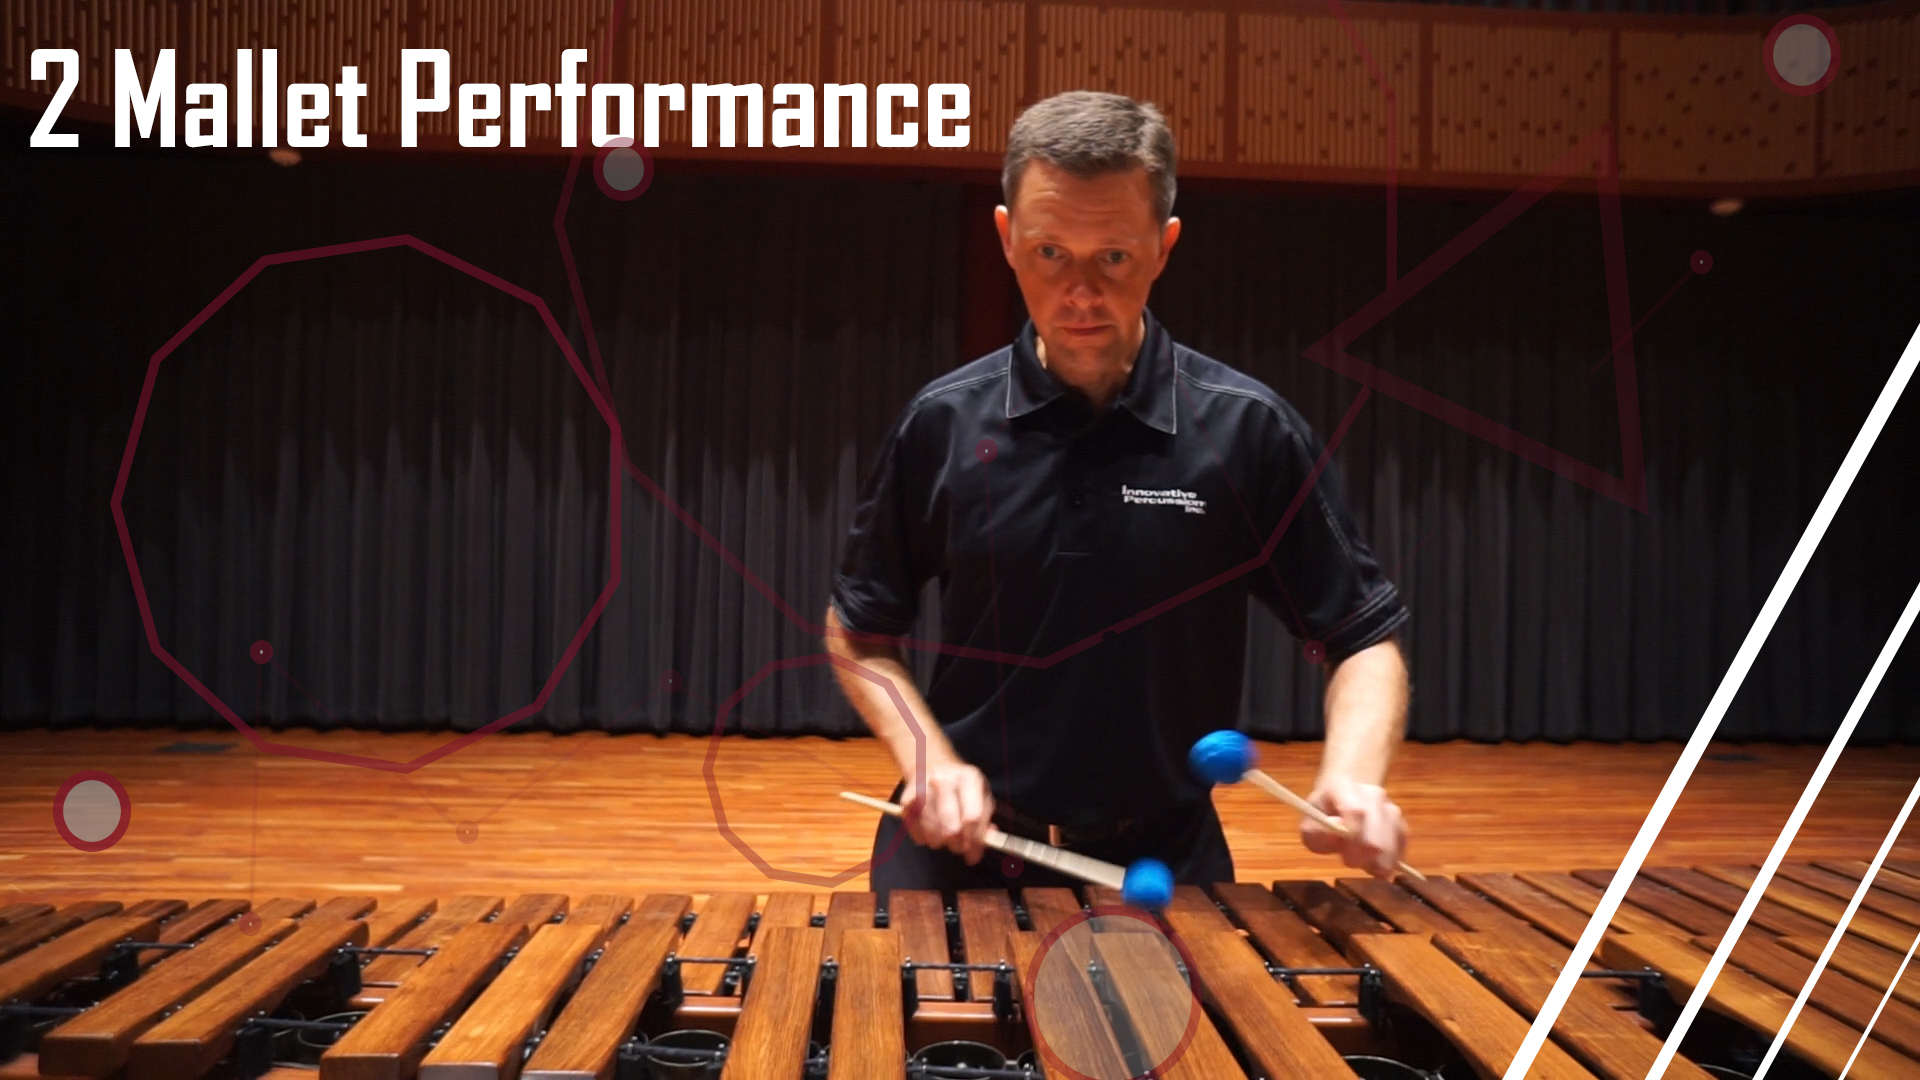 2 Mallet Performance